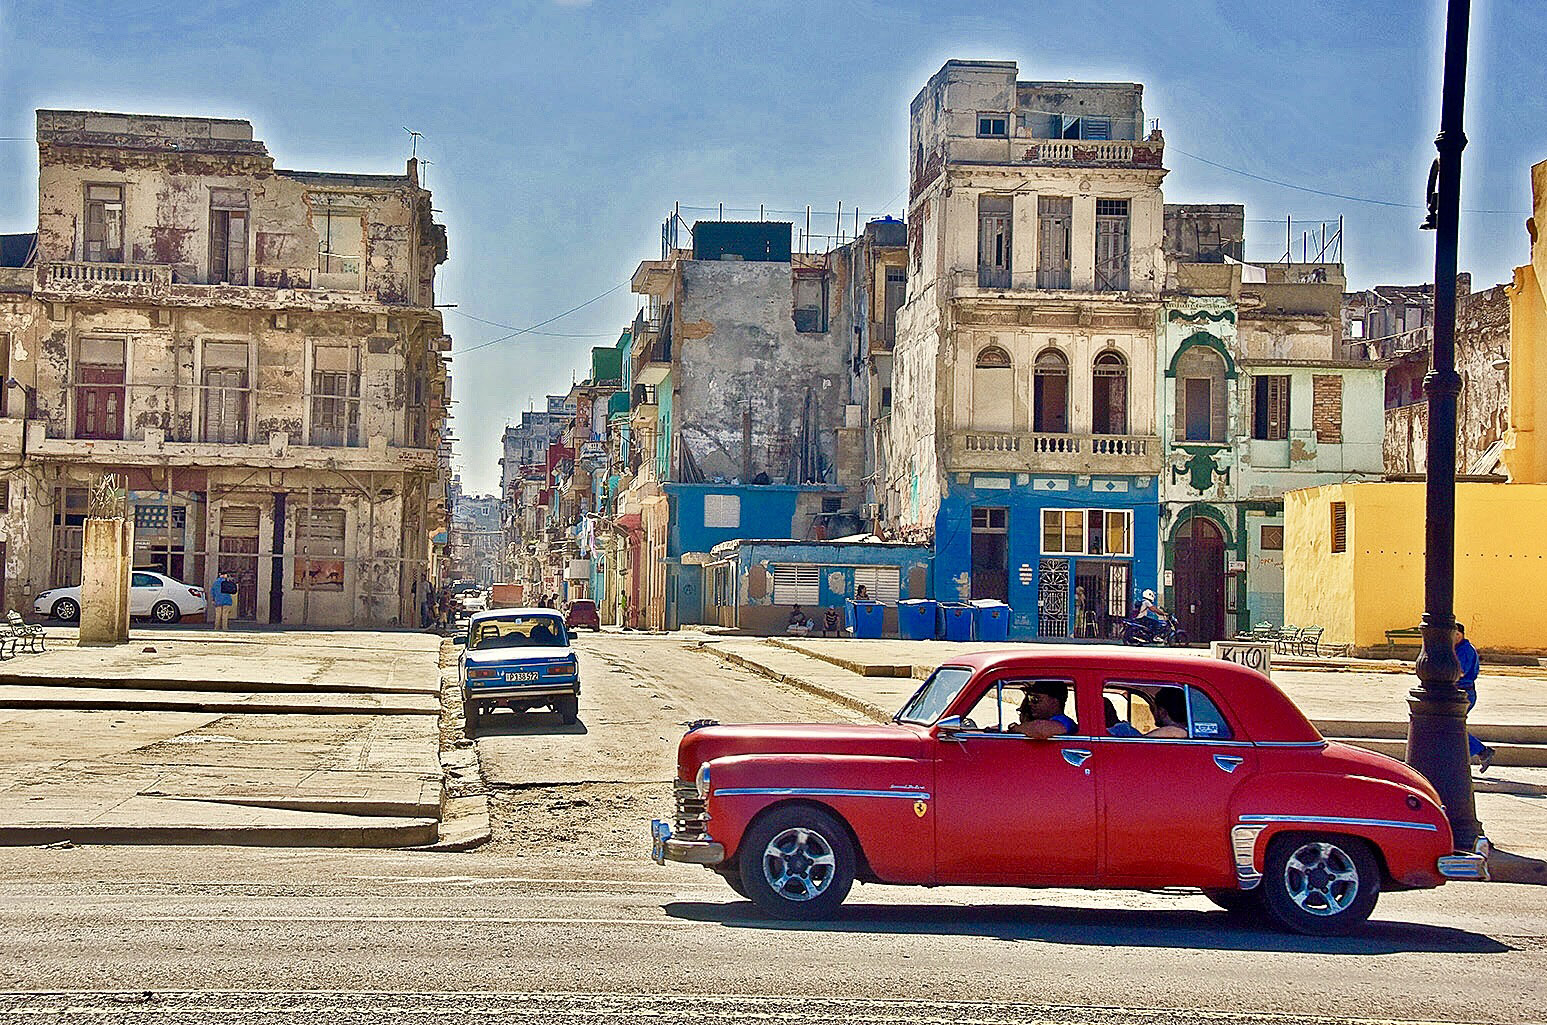 Photo of a classic old red car going down the Malećon Drive in Havana, Cuba showing desolate buildings in the background.